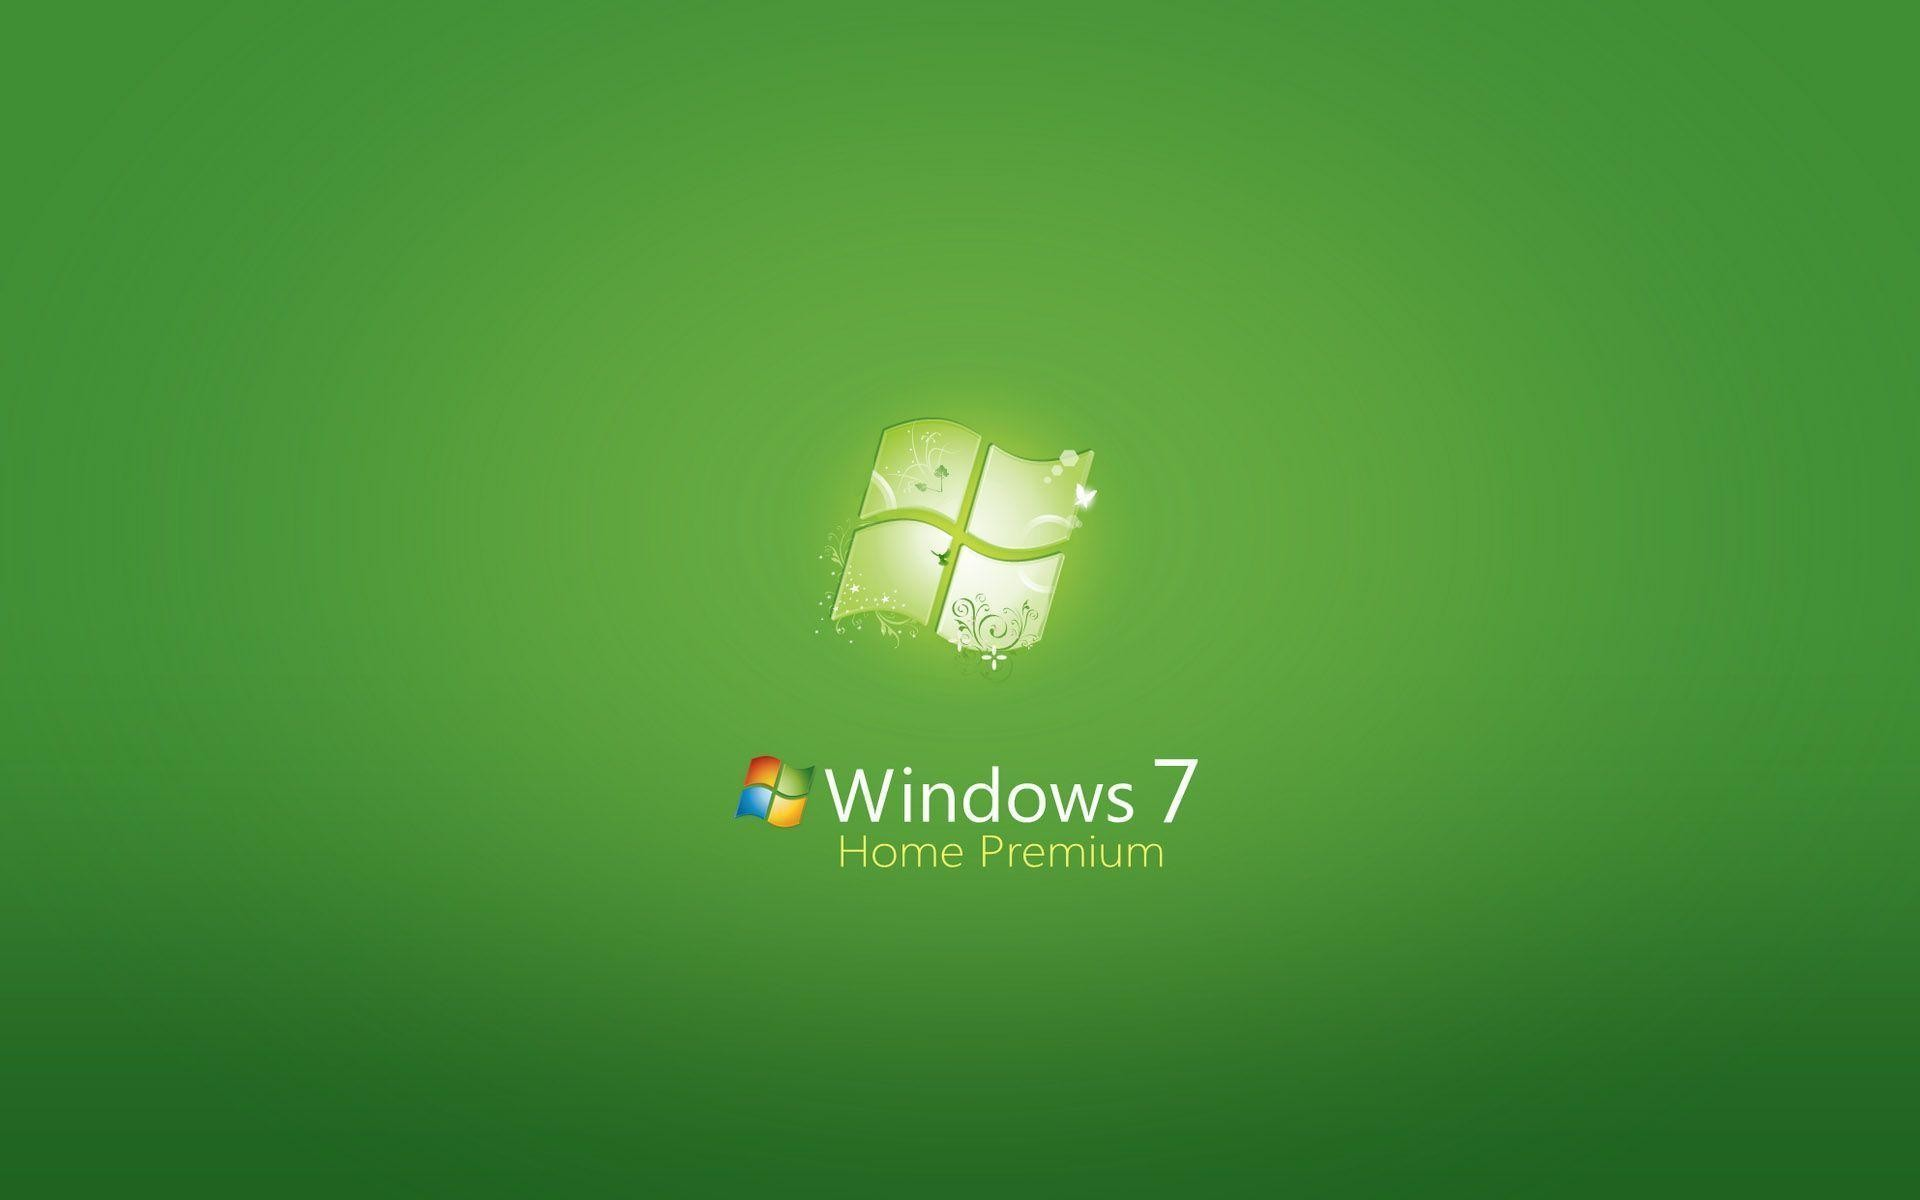 Windows 7 Home Premium Wallpaper 64 Pictures